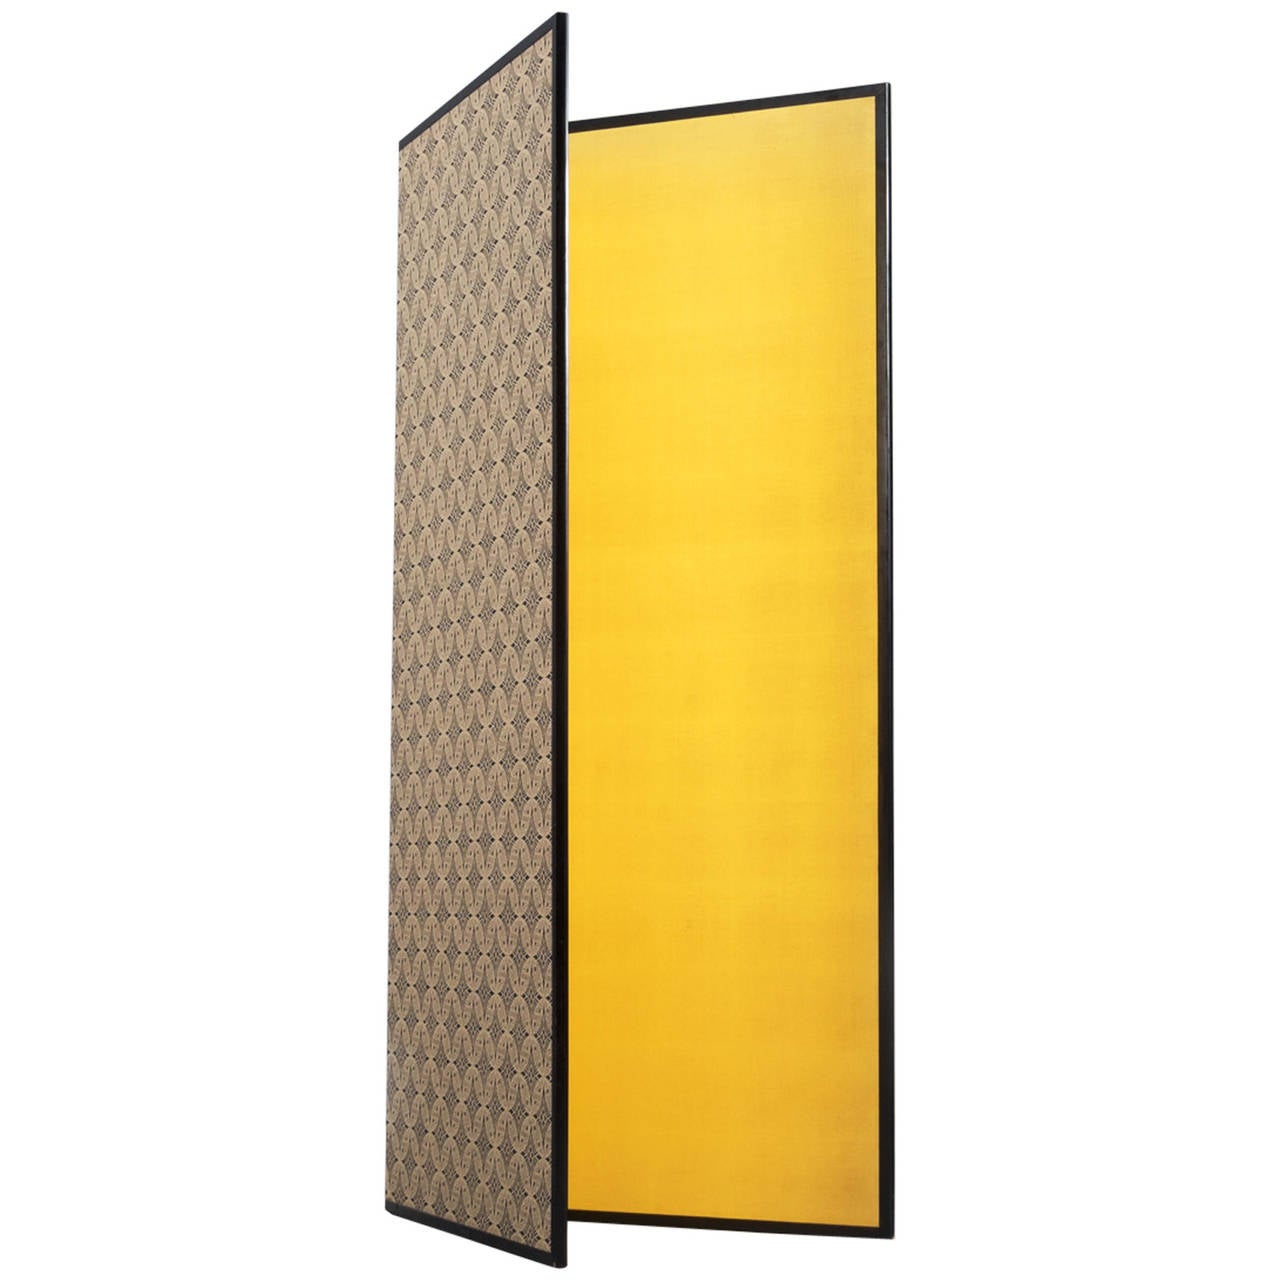 Gold leaf folding screen from French origin. The two panels are carefully decorated with a nice pattern and gold leaf. Real leaf imprint.  This compact paravent is very functional to use as decorative item and room divider as well.